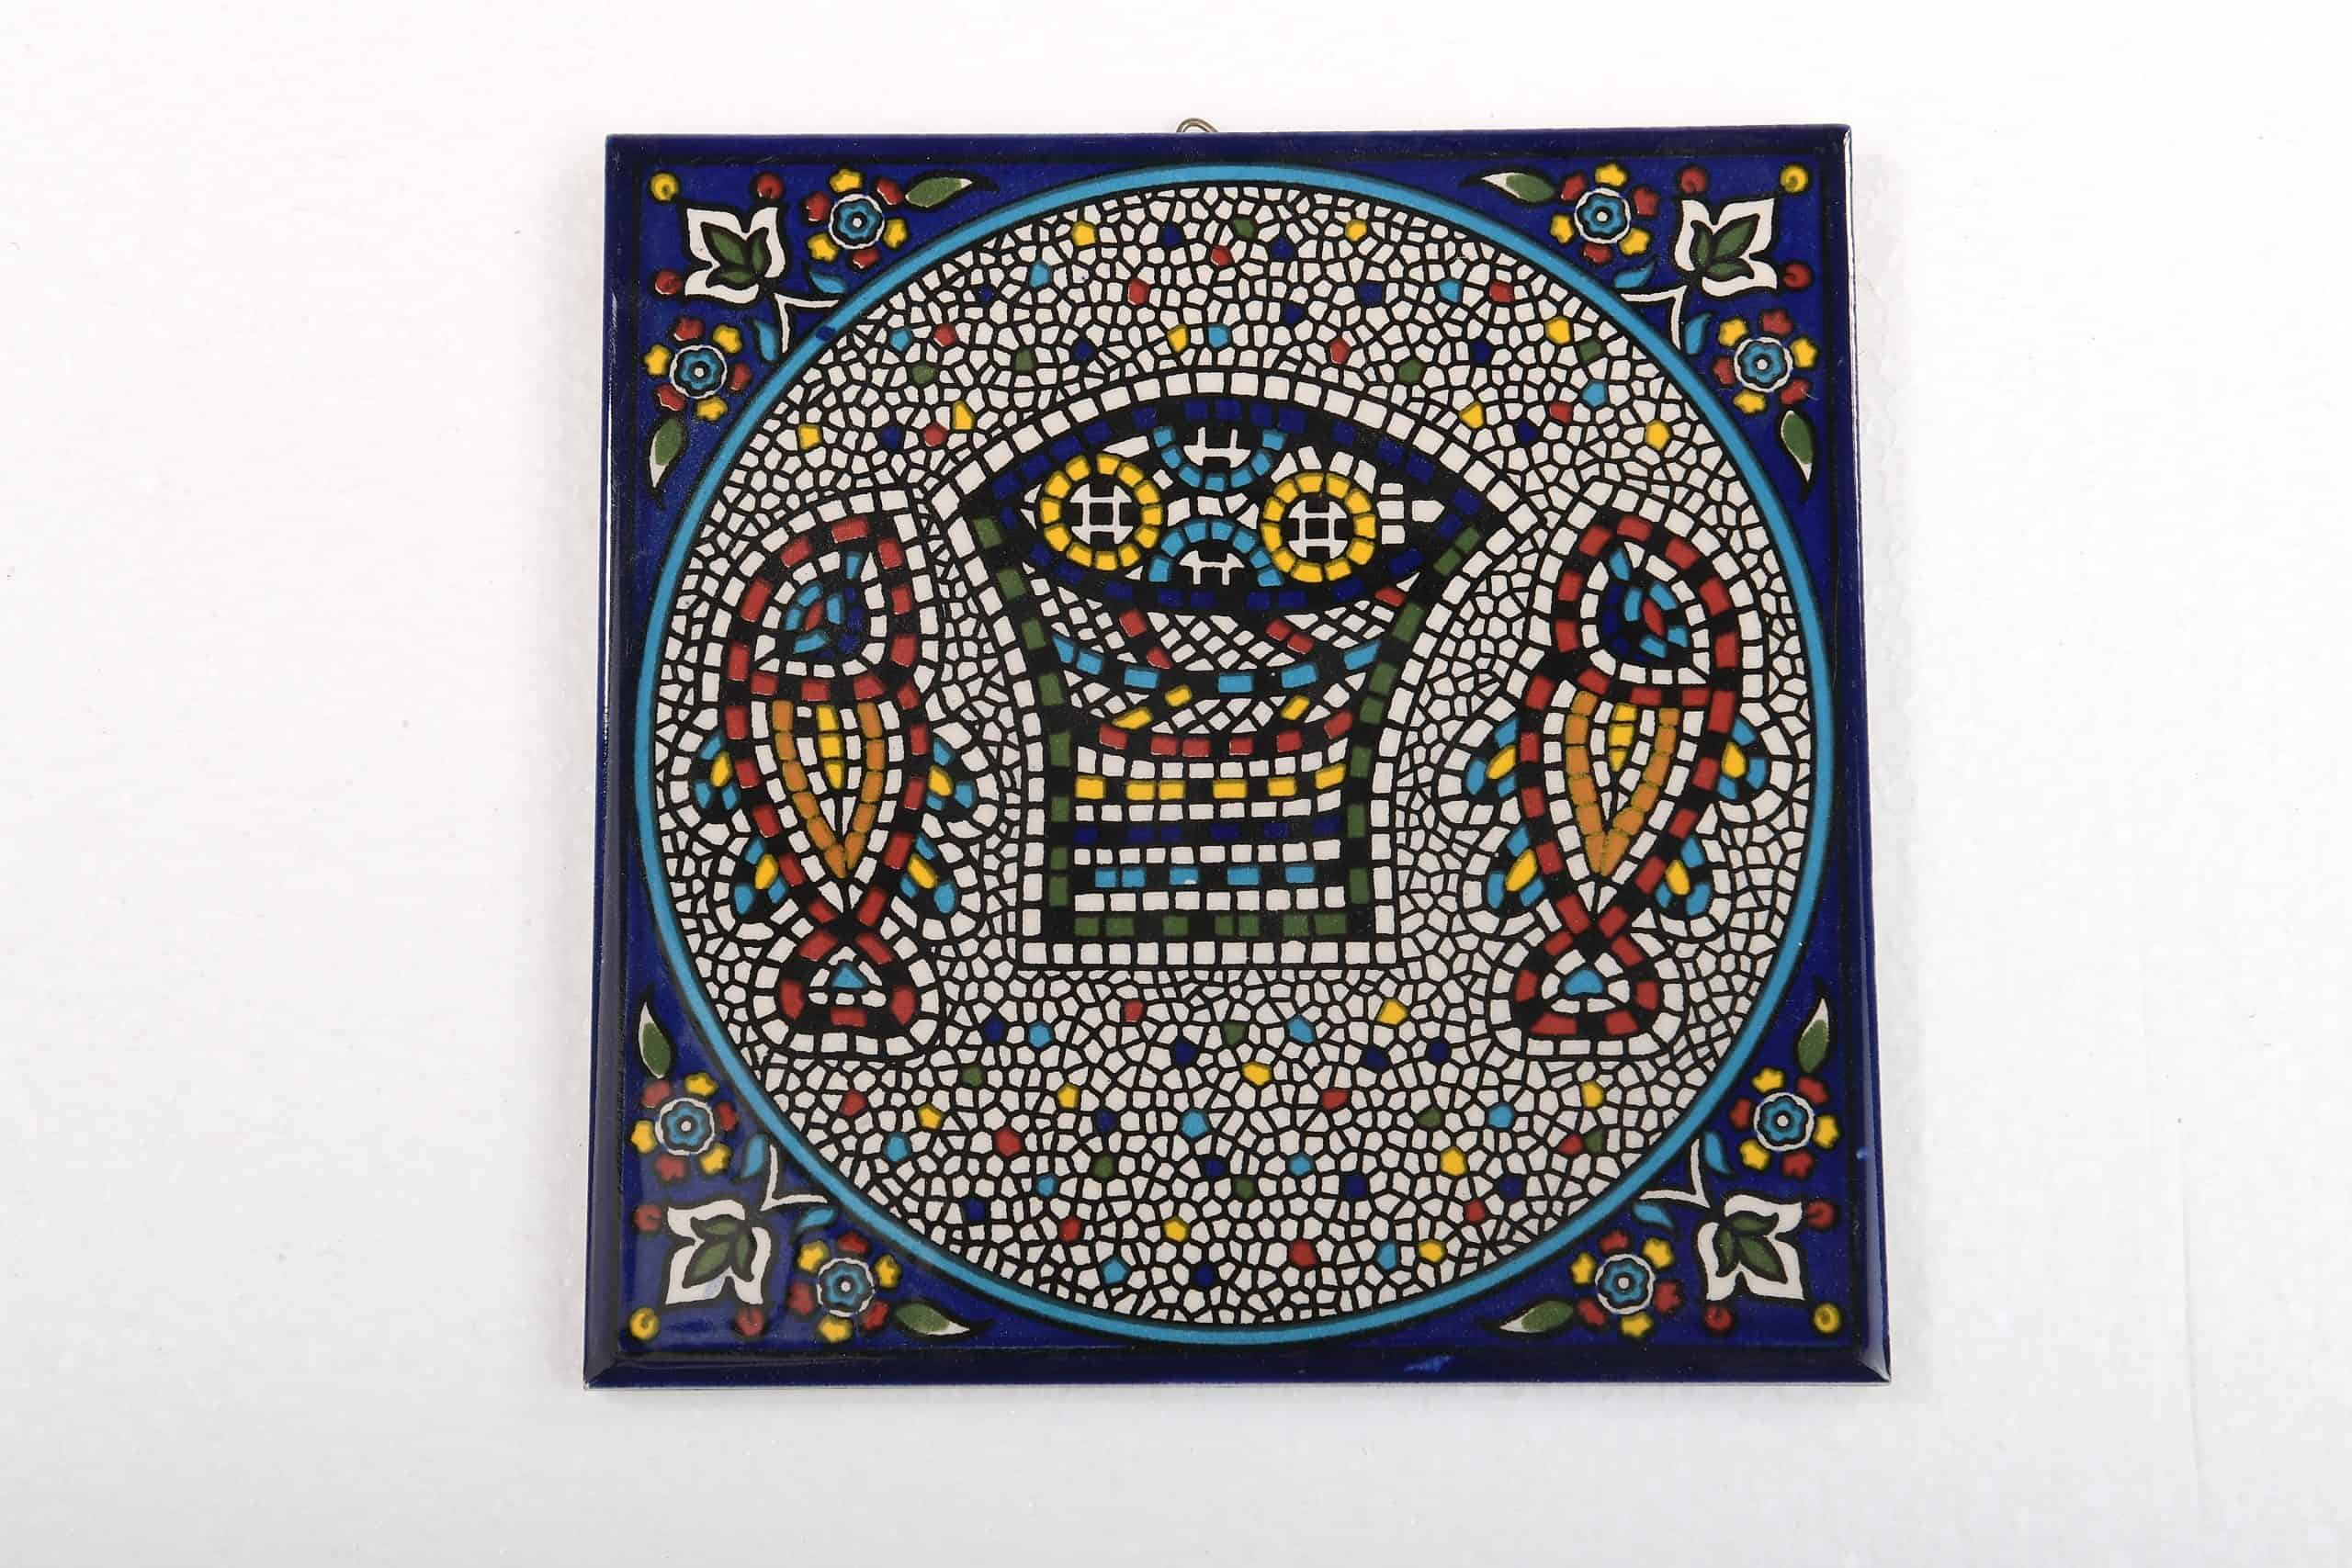 Armenian Wall Tile - Tabgha loaves and the fishes